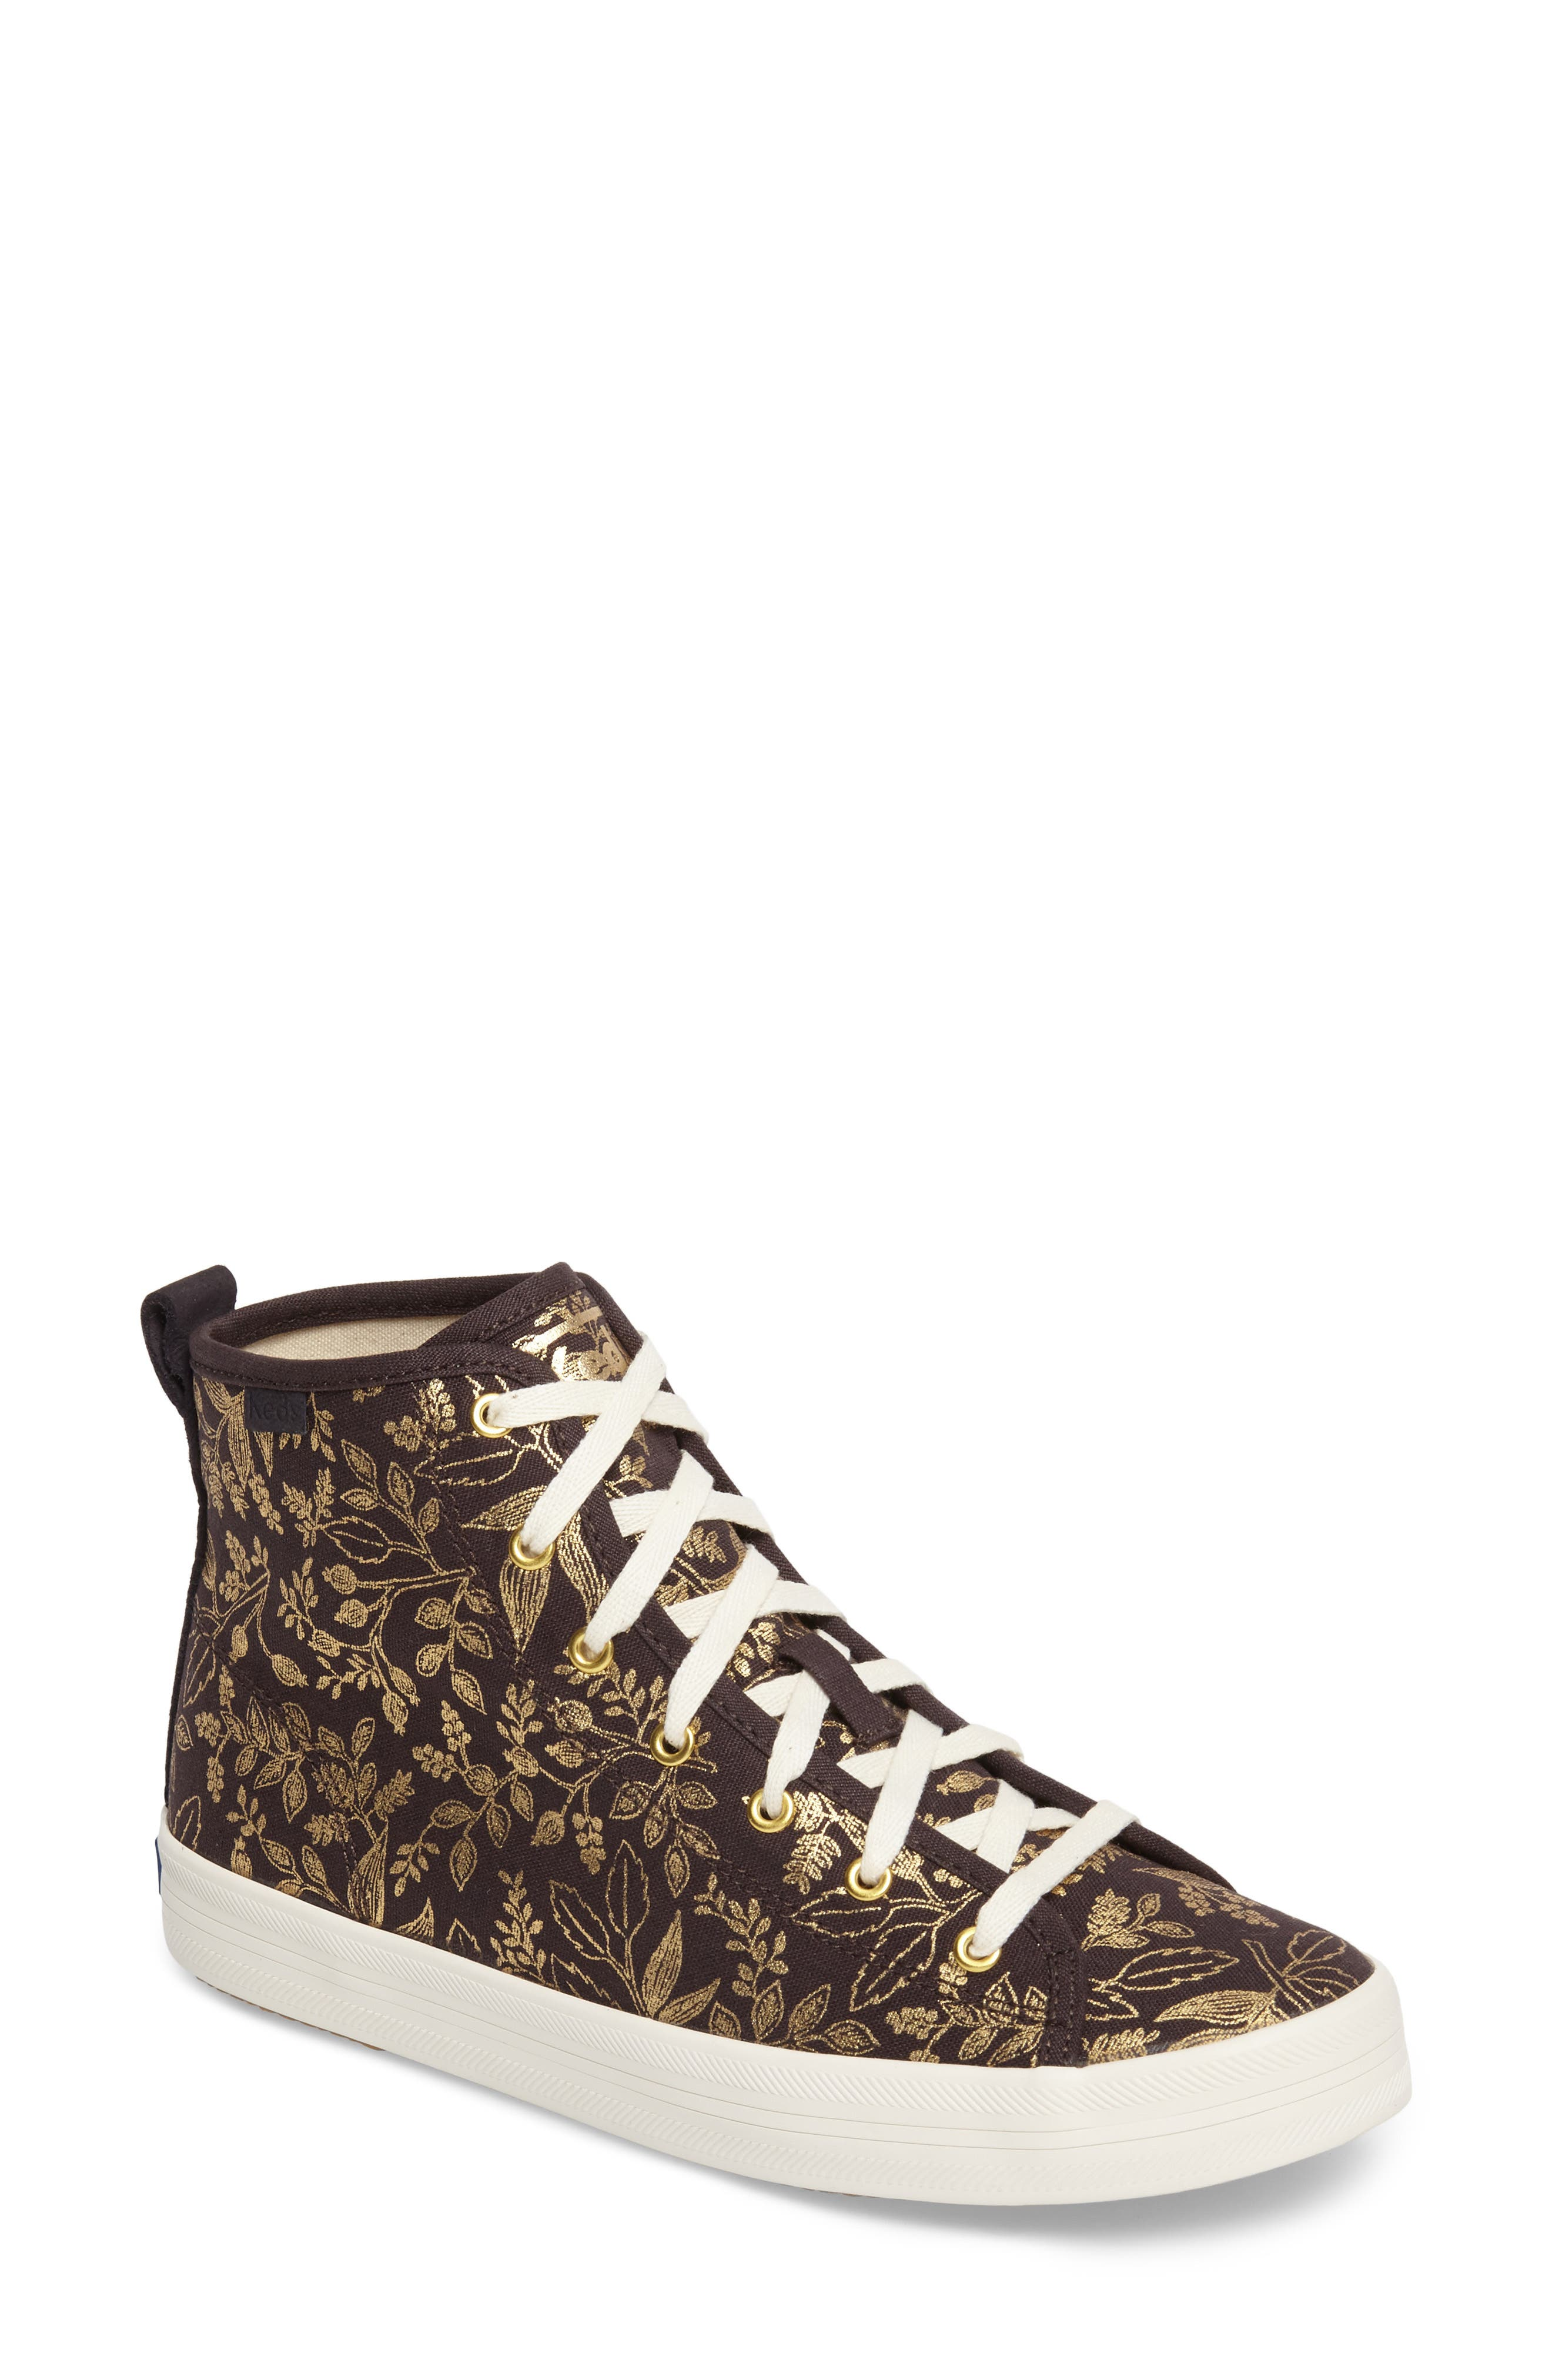 Alternate Image 1 Selected - Keds® x Rifle Paper Co. Queen Anne High Top Sneaker (Women)